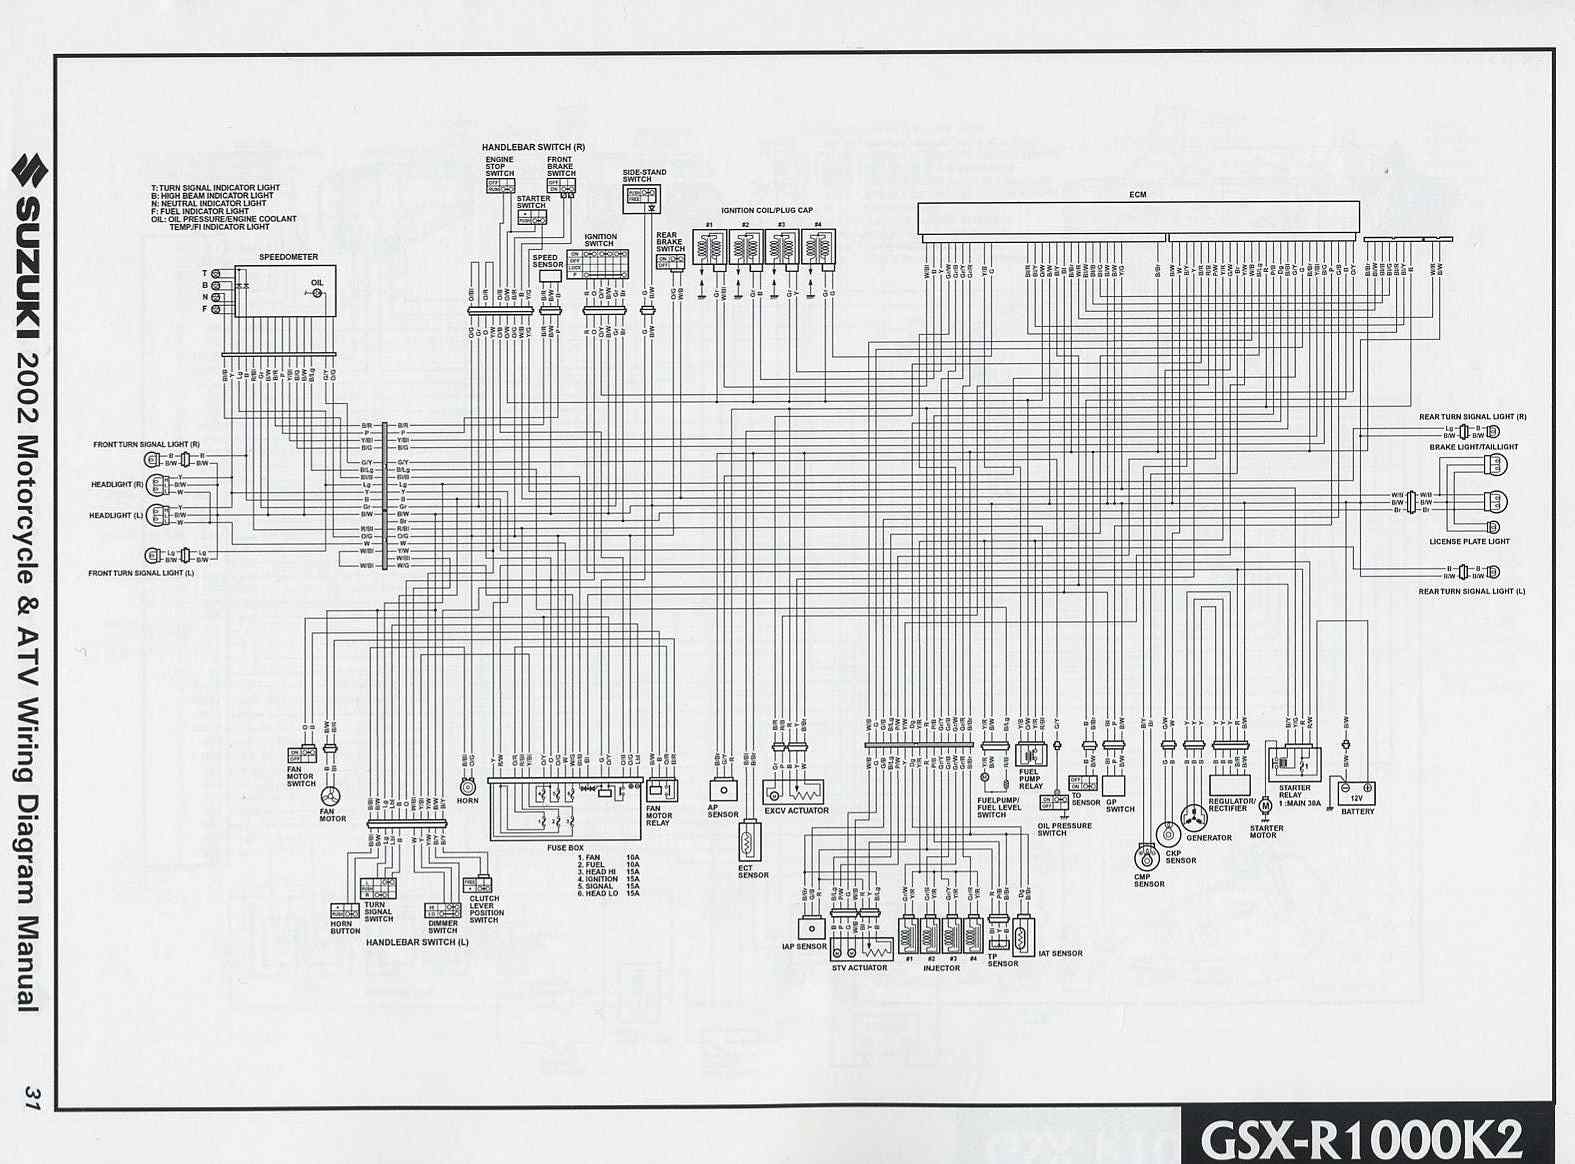 suzuki gsxr fuse box wiring diagram repair guides suzuki gsx r wiring diagram k 6 [ 1575 x 1164 Pixel ]